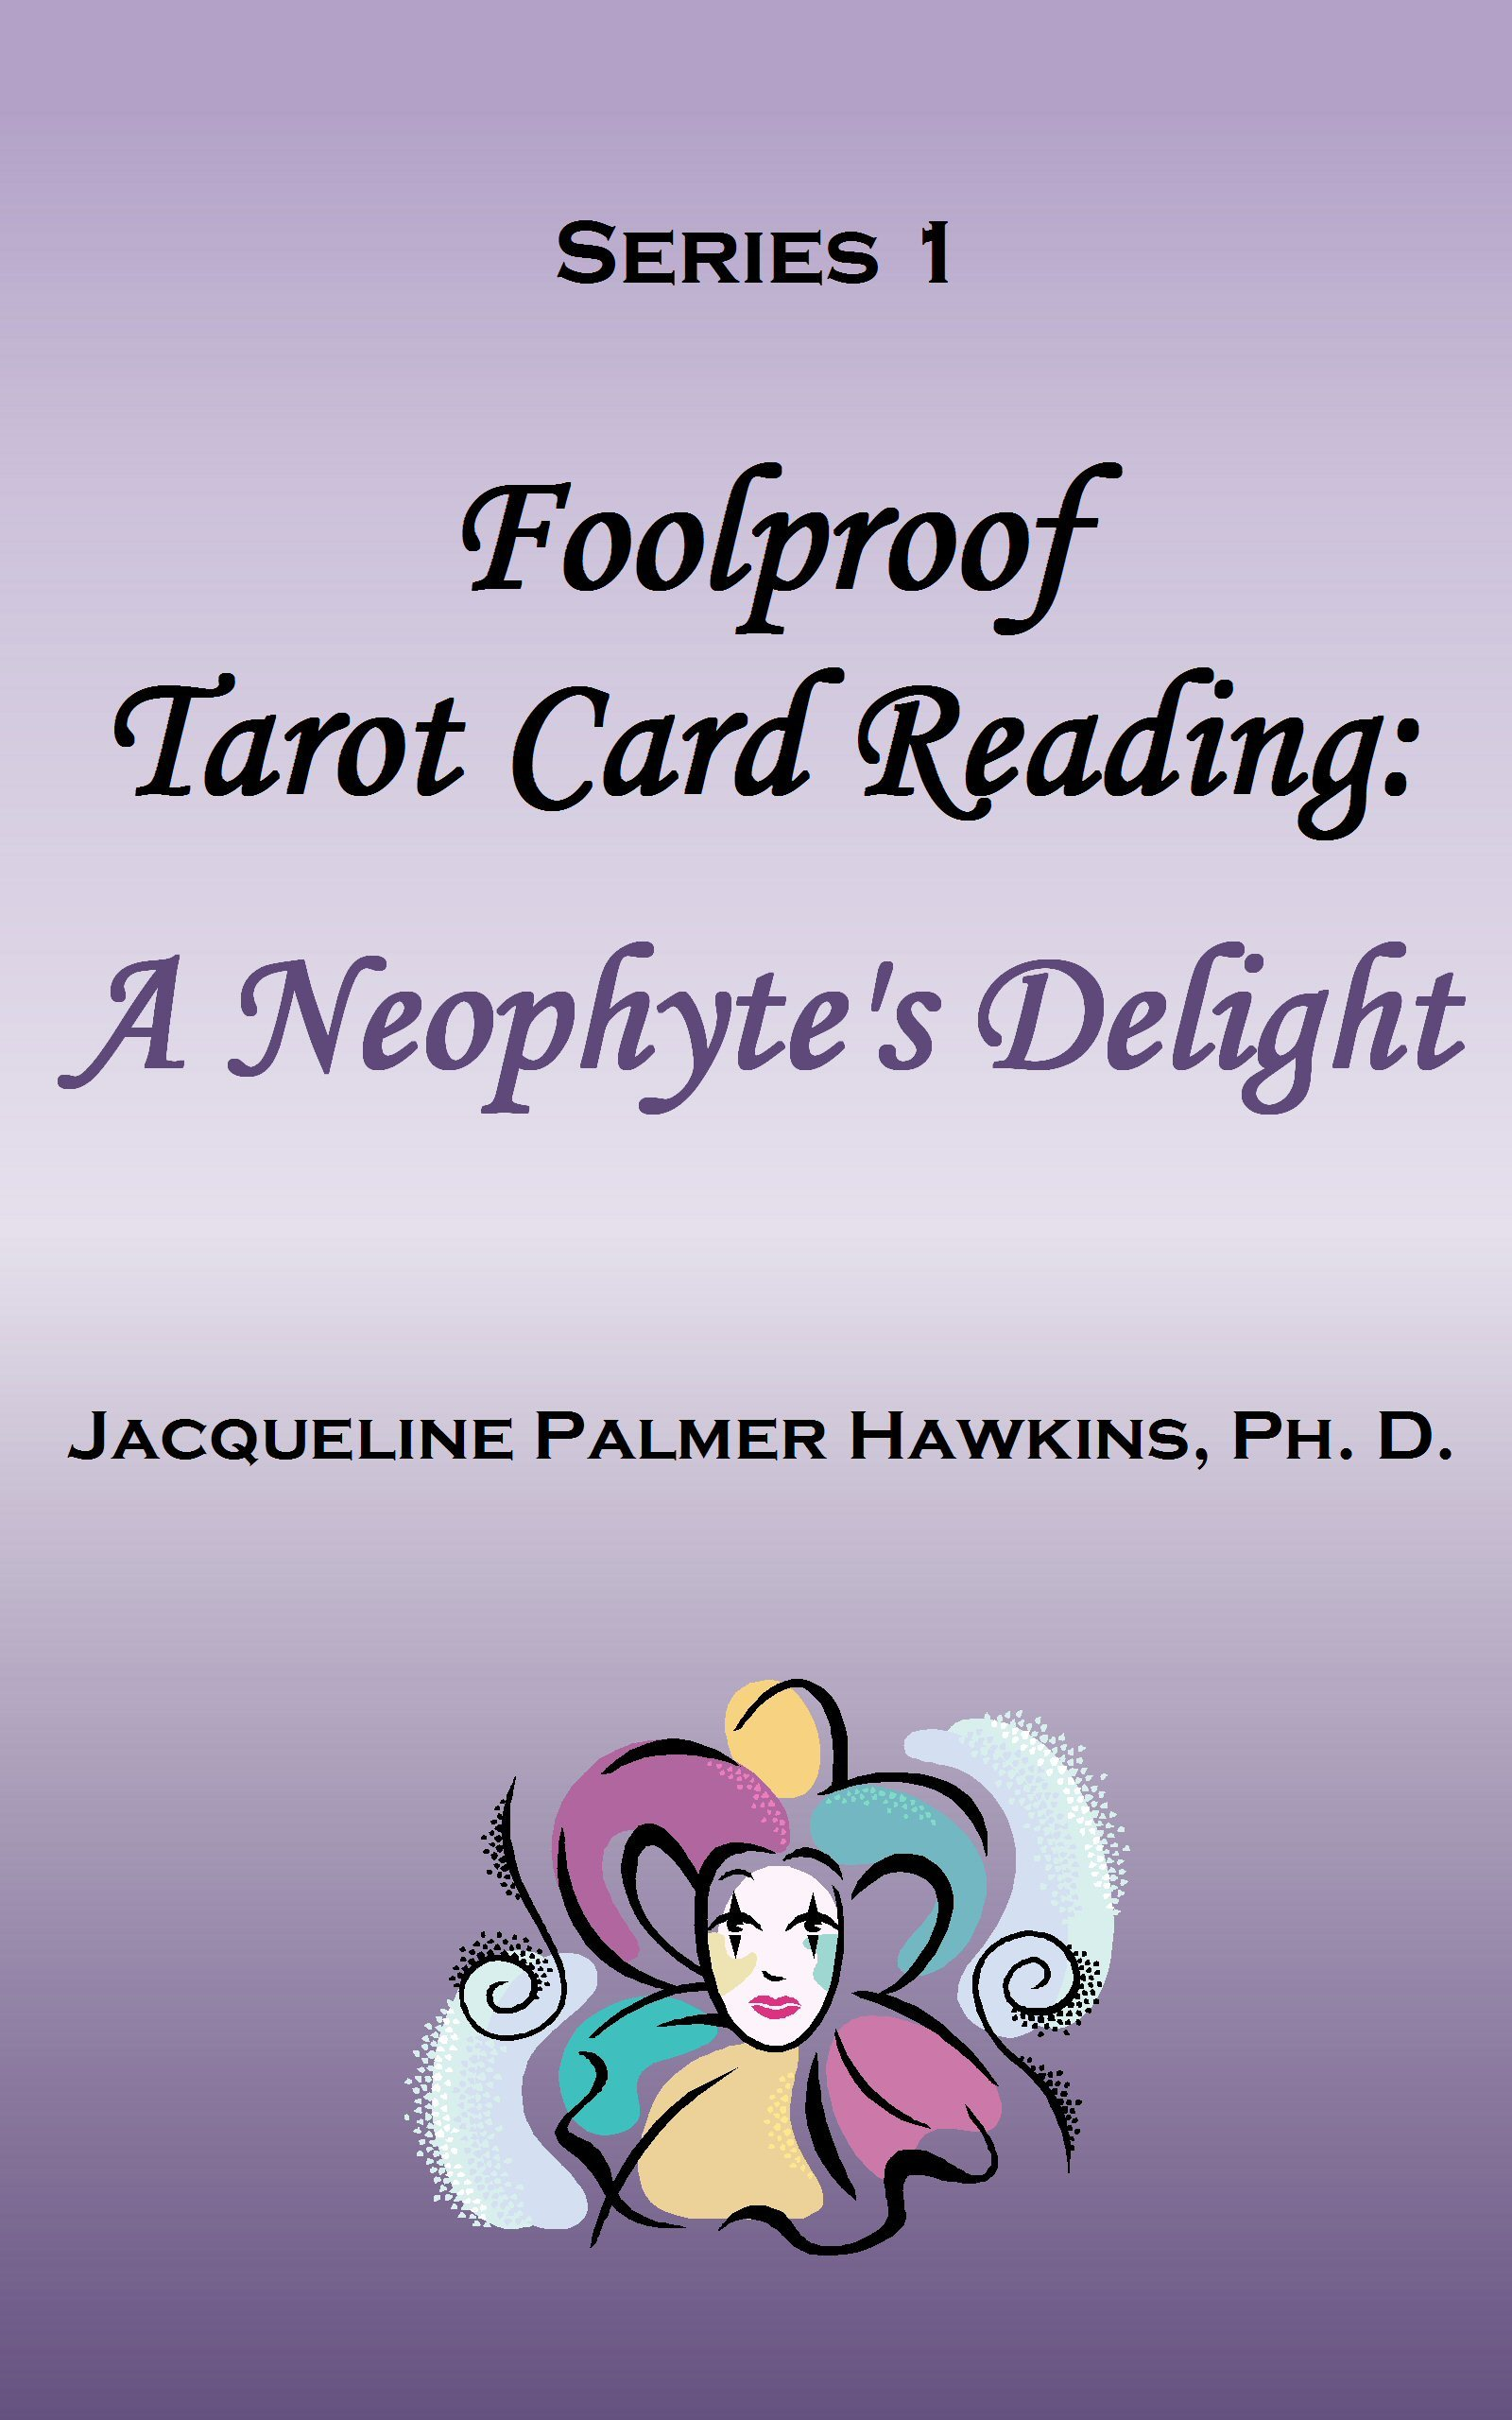 Foolproof Tarot Card Reading: A Neophyte's Delight - Series 1